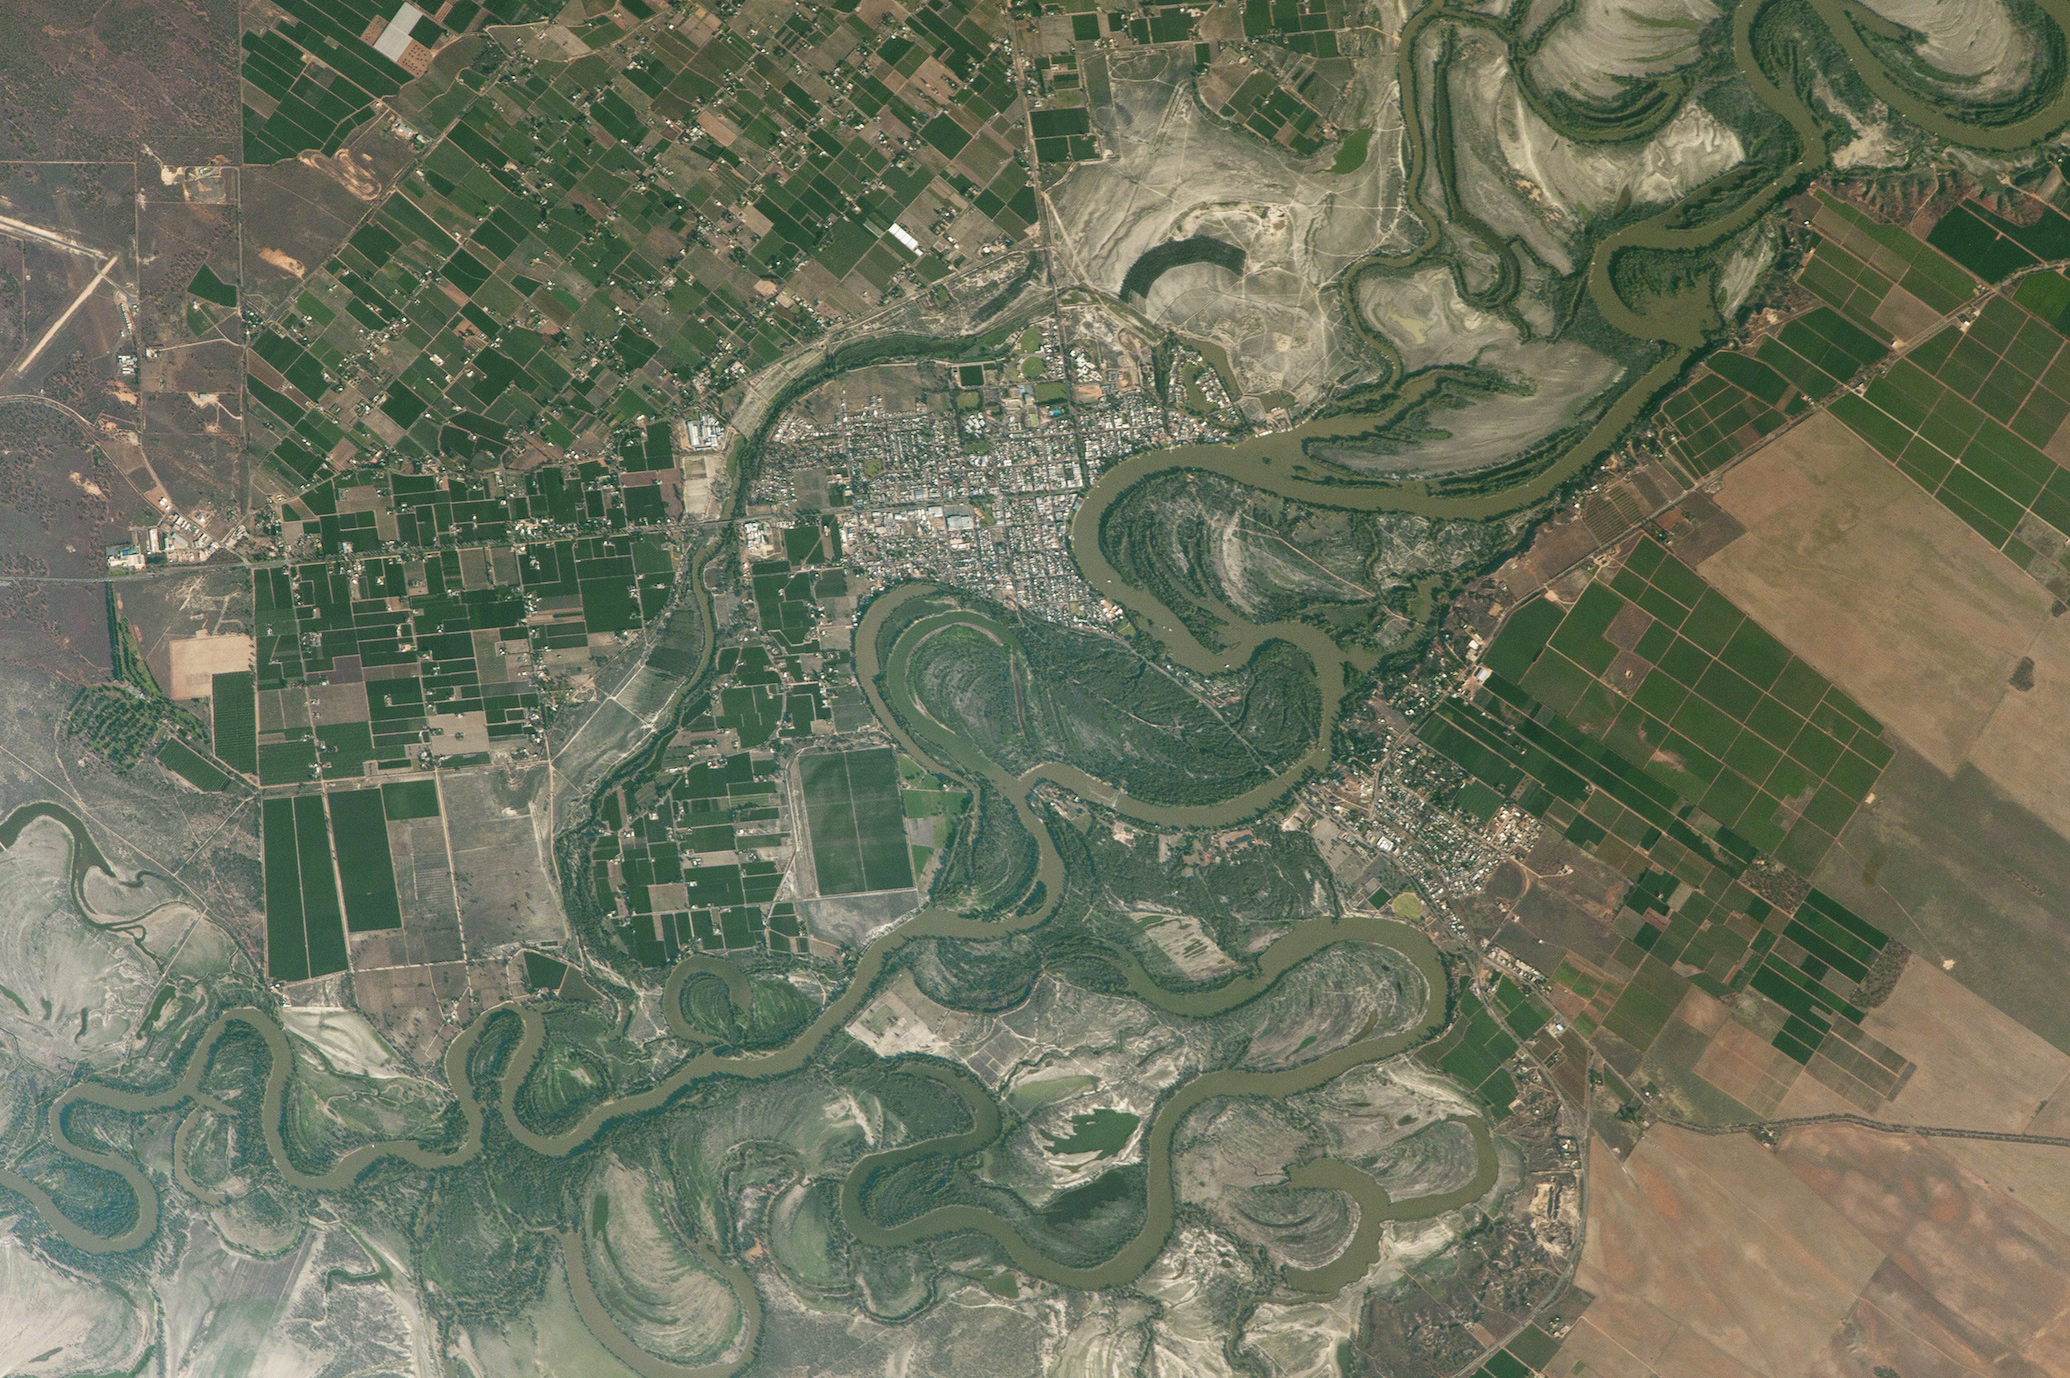 Today's image comes thanks to the NASA Earth Observatory and features a look at the agricultural fields of the Murray River valley in South Australia.